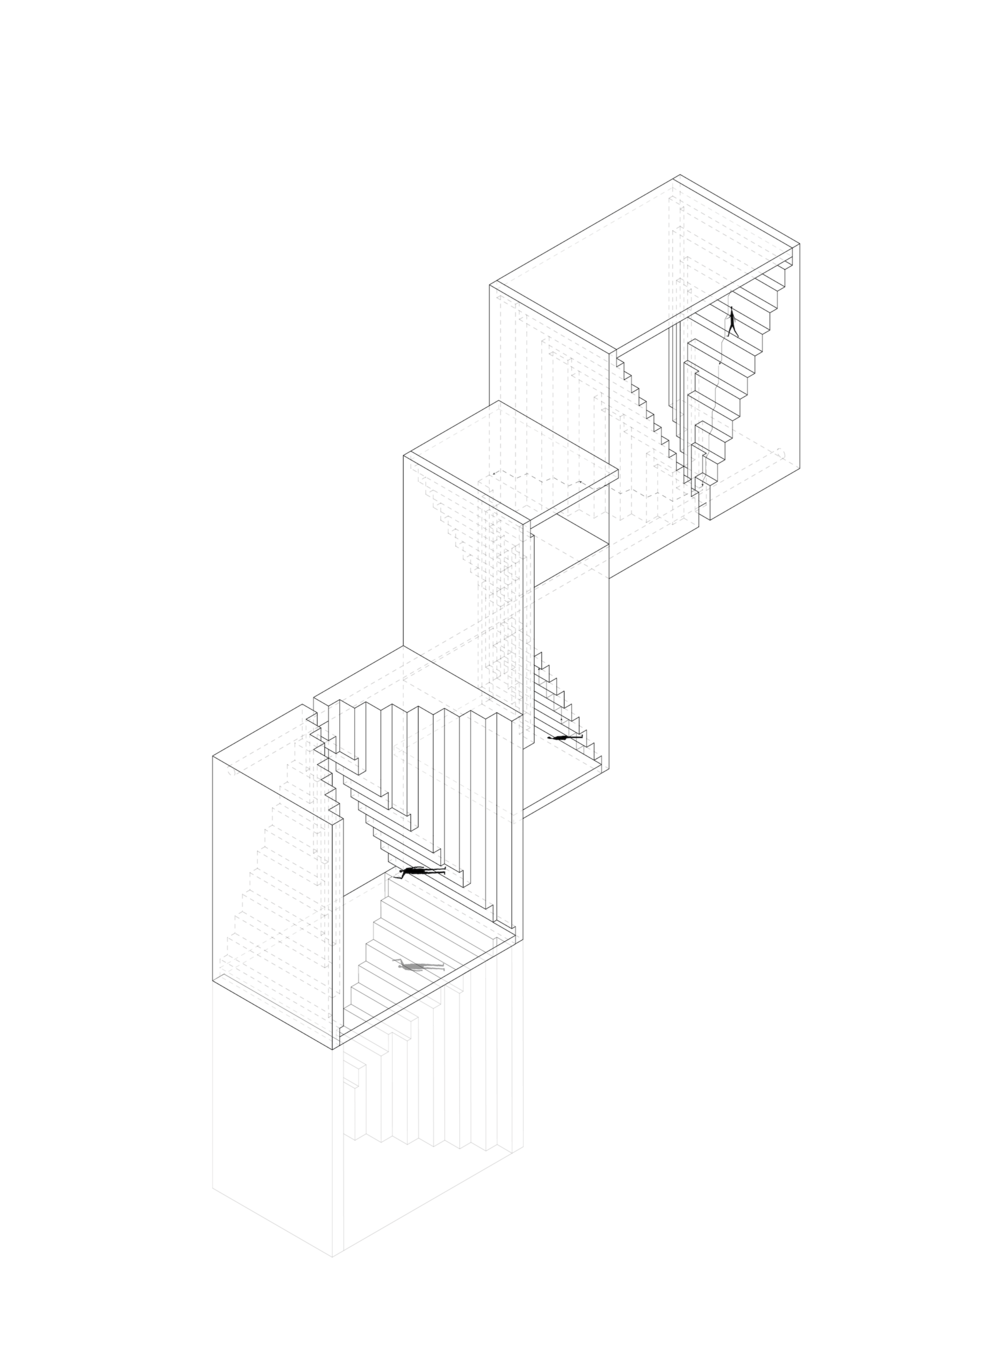 Axonometric : Experiential